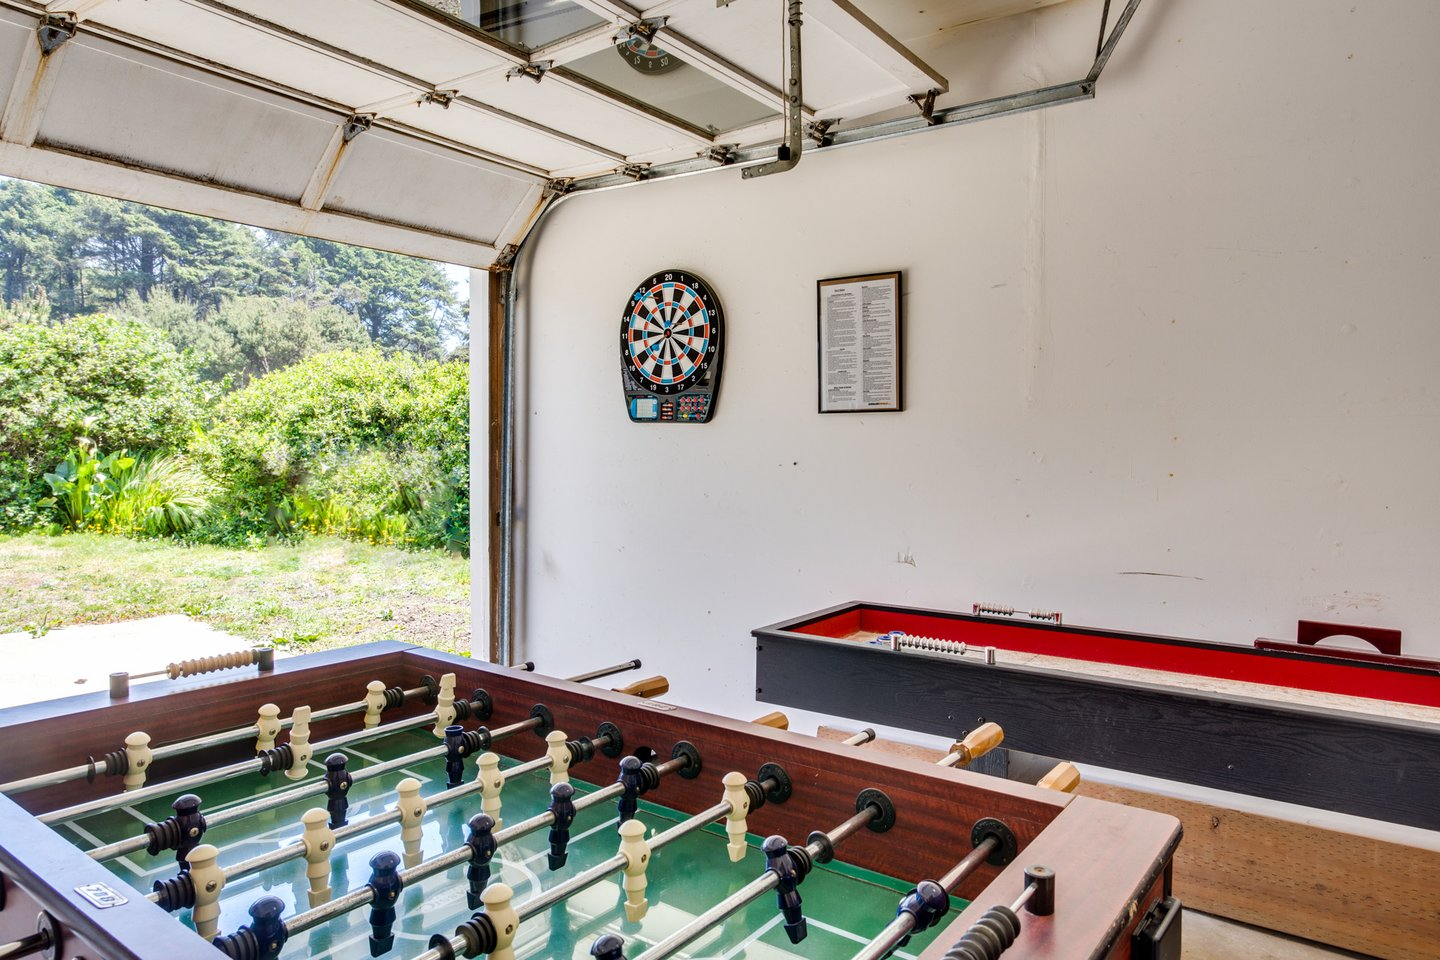 Garage game room with Foosball & shuffleboard.